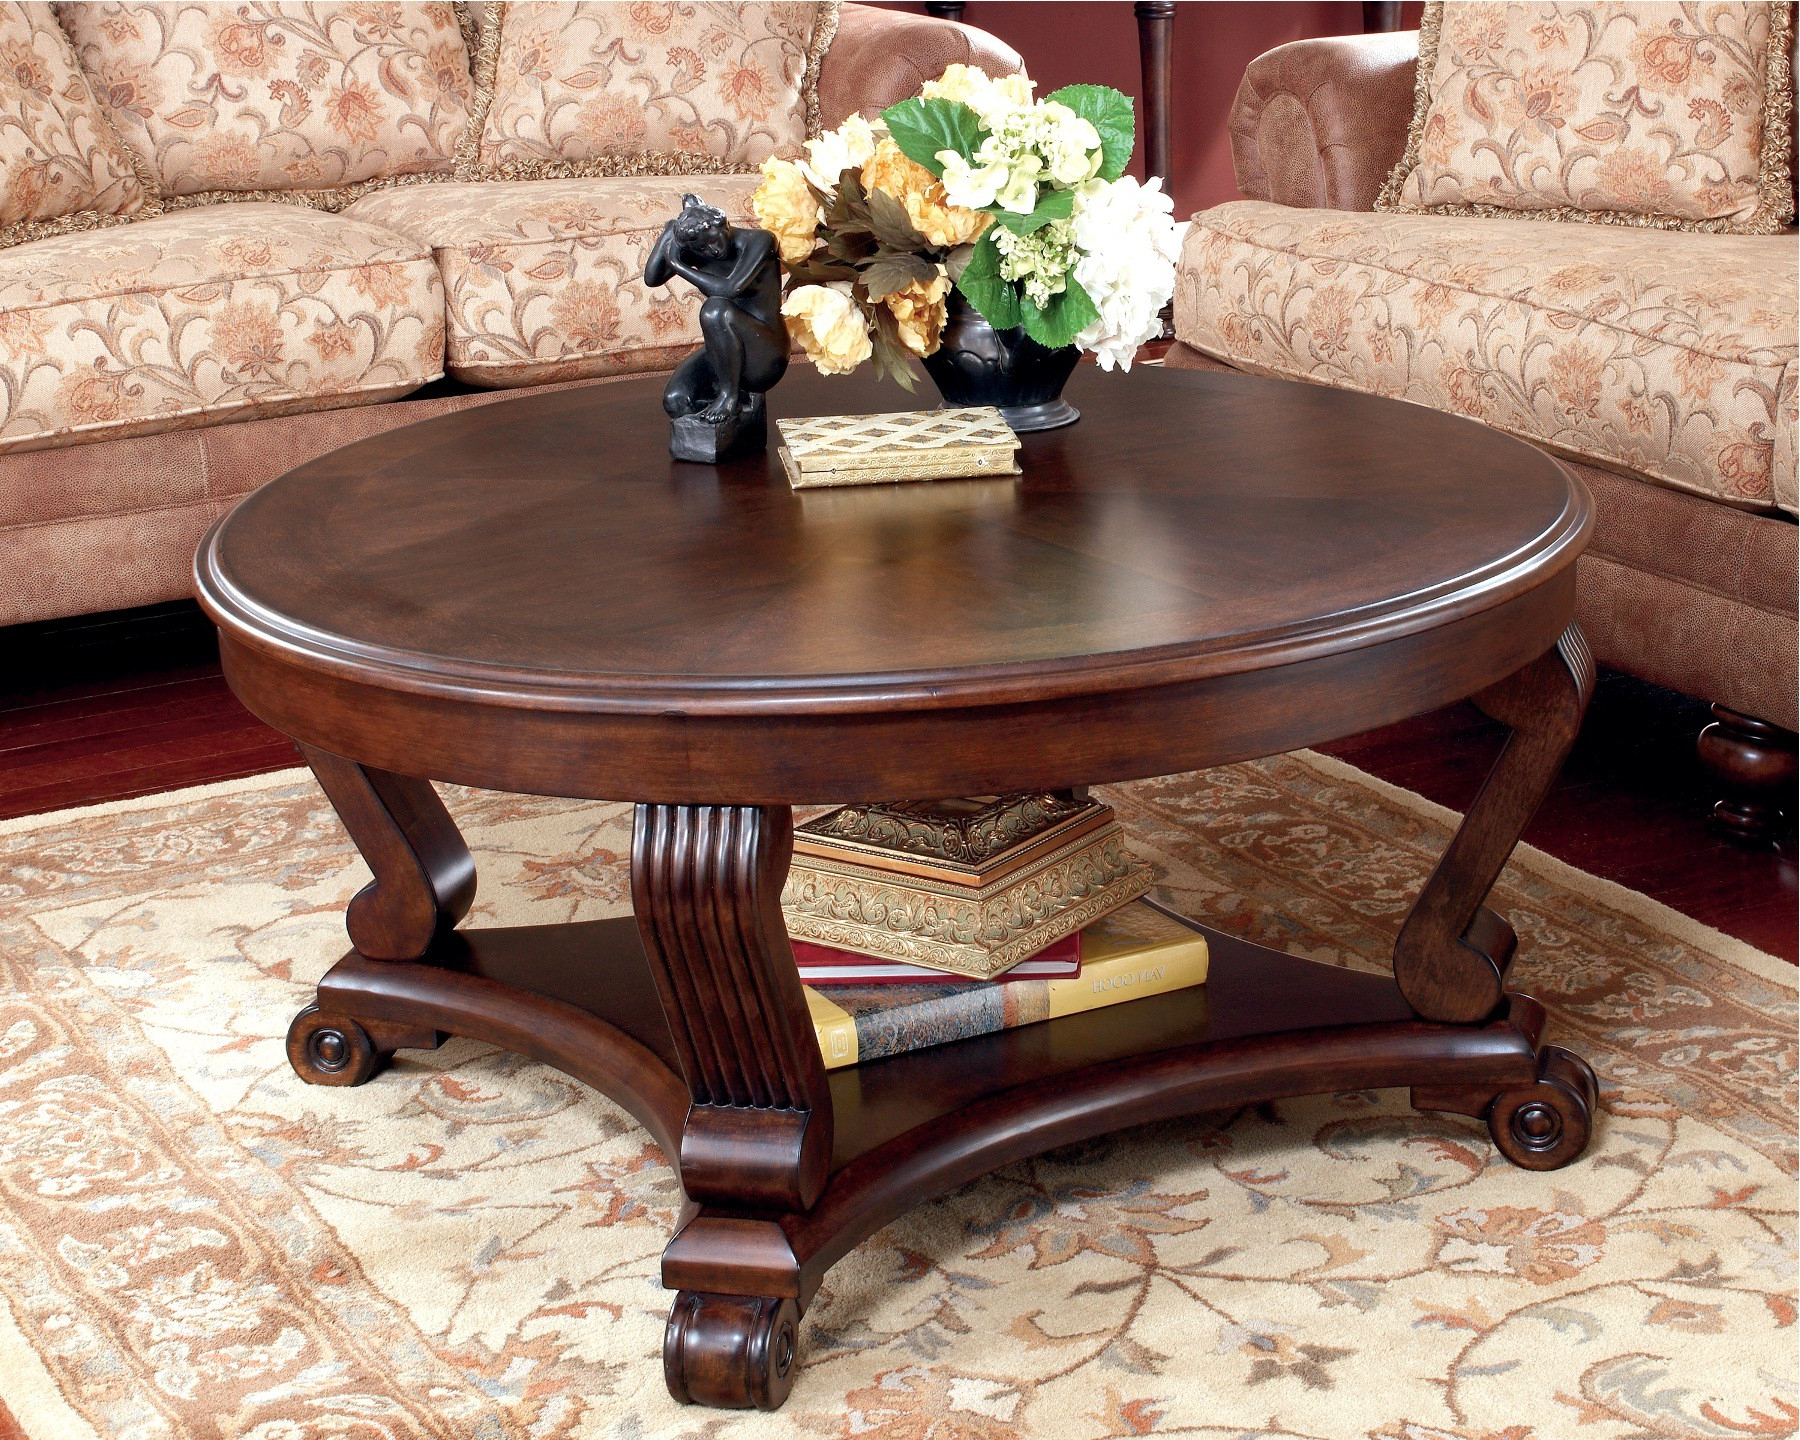 19 Round Coffee Table Design Collection For Complete Furniture Inside Most Current Round Carved Wood Coffee Tables (Gallery 10 of 20)